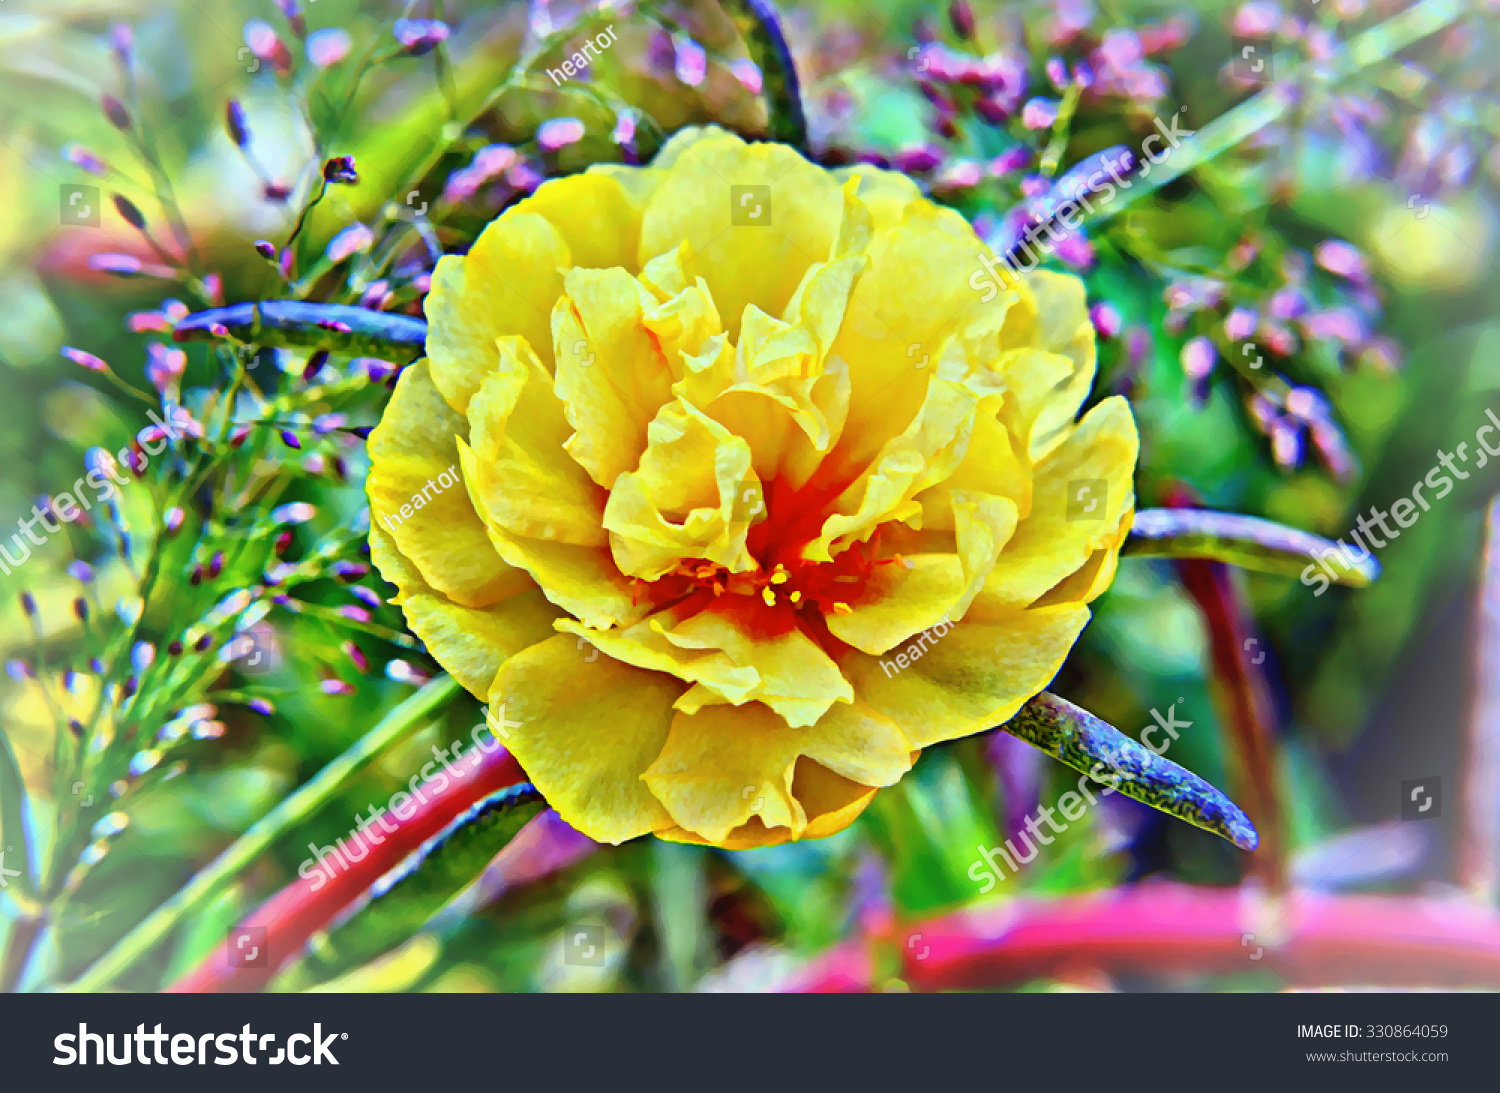 Watercolor Botanic Illustration Pretty Little Flowers Stock